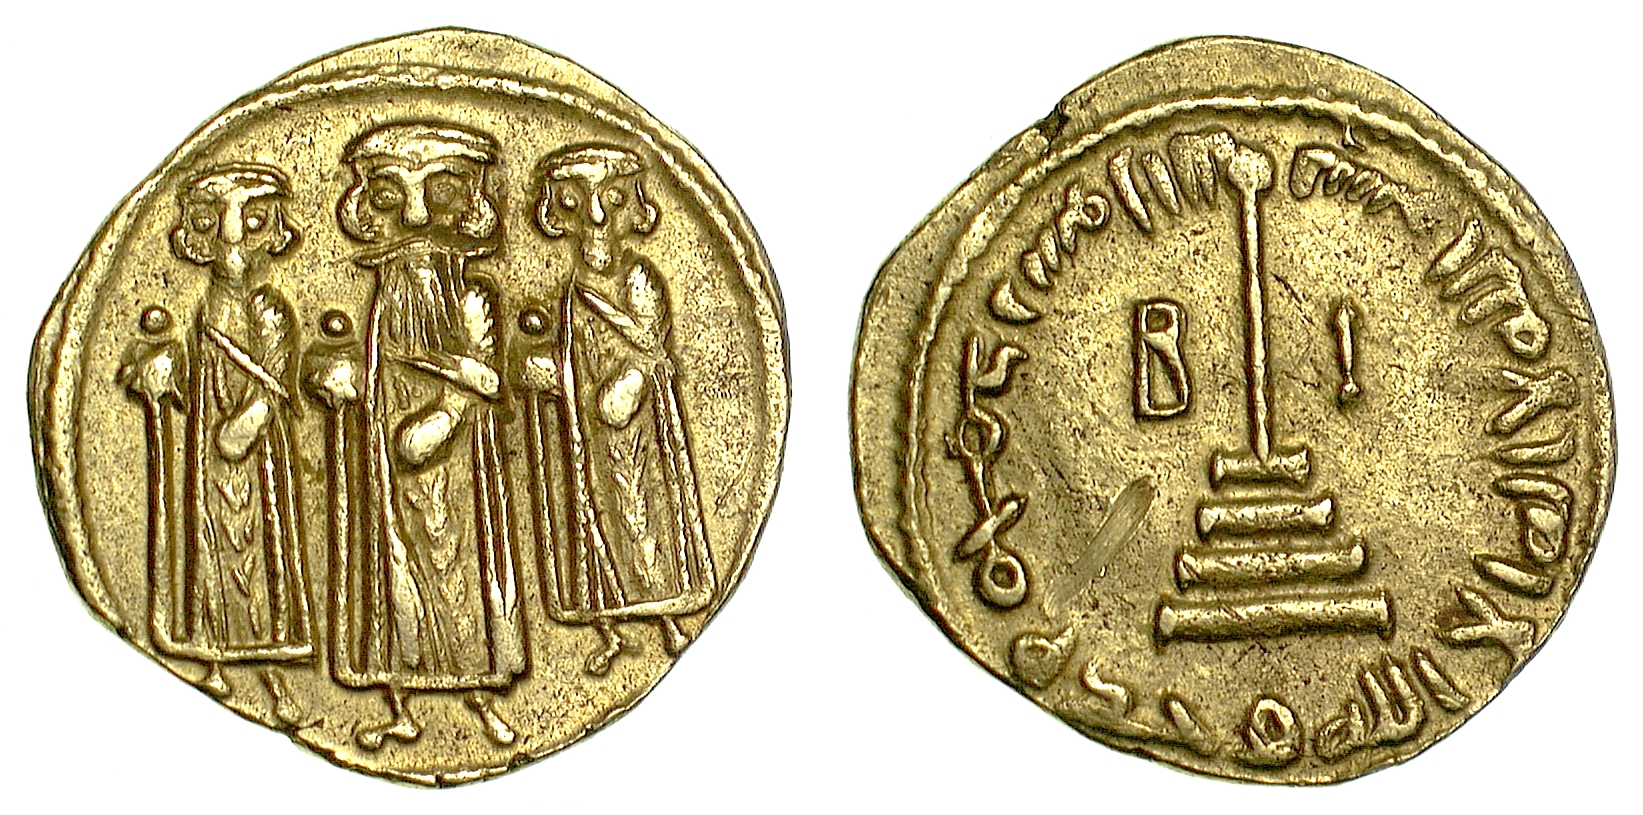 Coins & Paper Money Online Discount Byzantine (300-1400 Ad) Smart Gold Byzantine Solidus Of Heraclius Showing Three Emperors